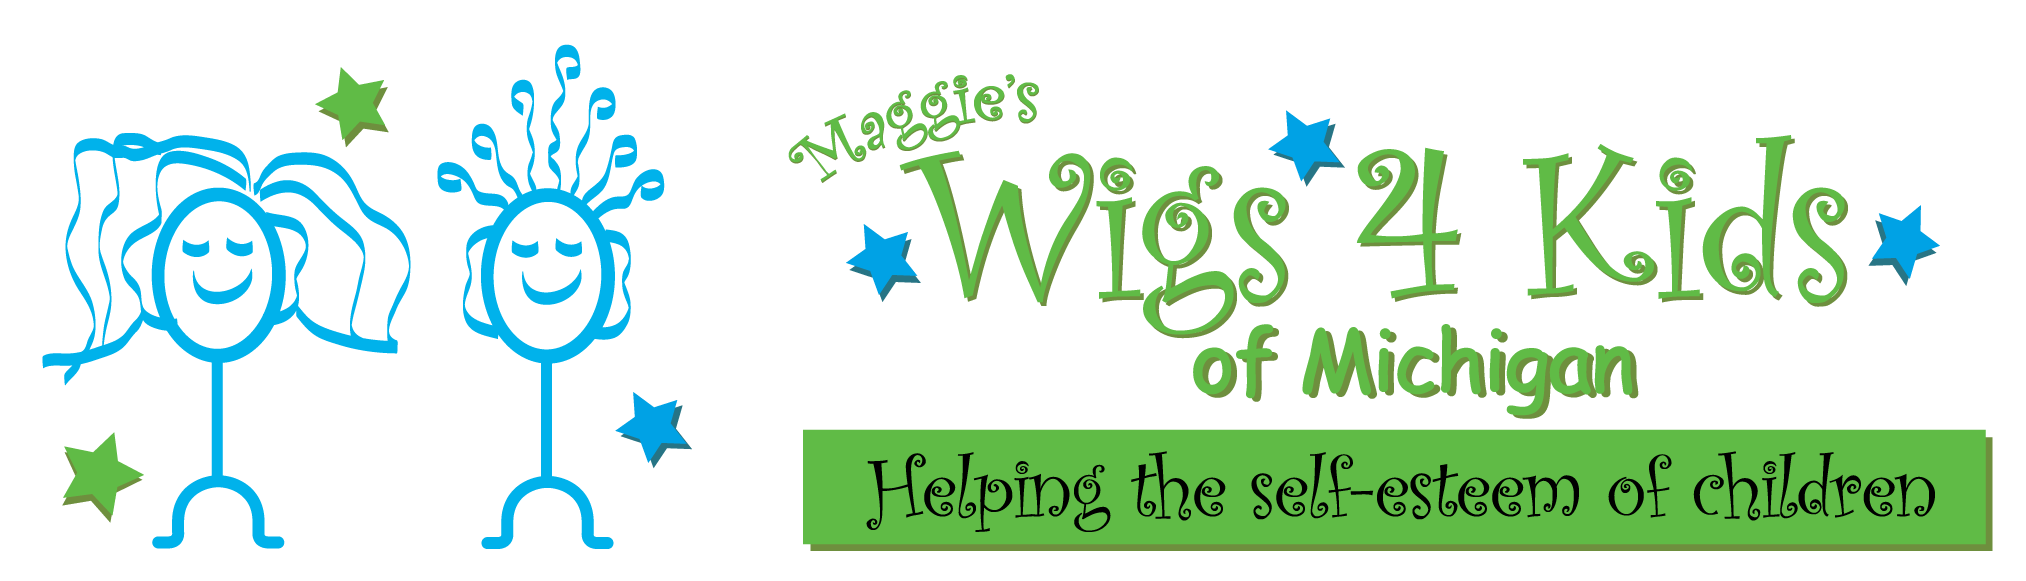 Maggie's Wigs 4 Kids of Michigan